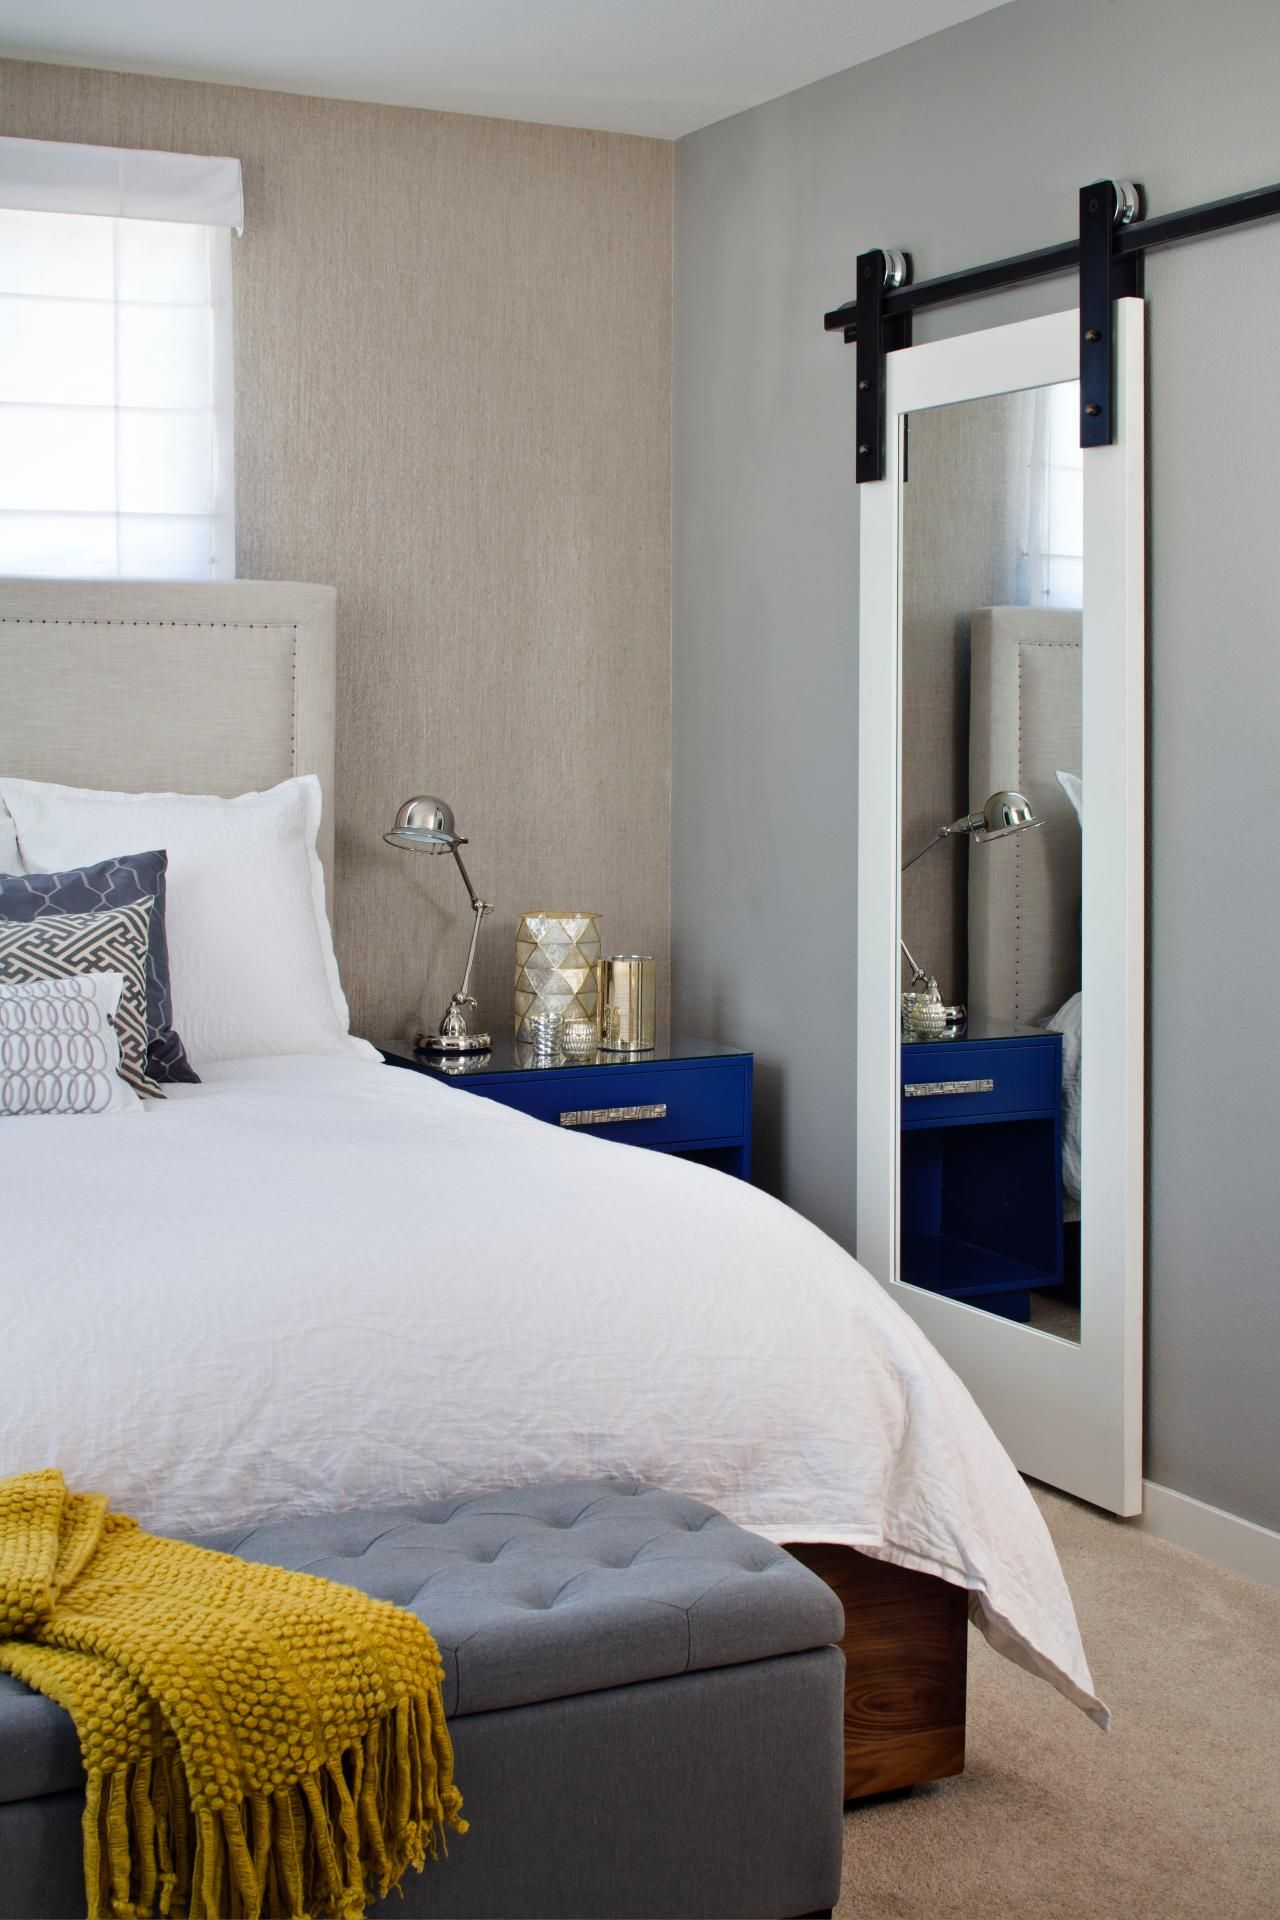 hgtv loves how a barndoor mirror adds an unexpected rustic touch to this neutral bedroom